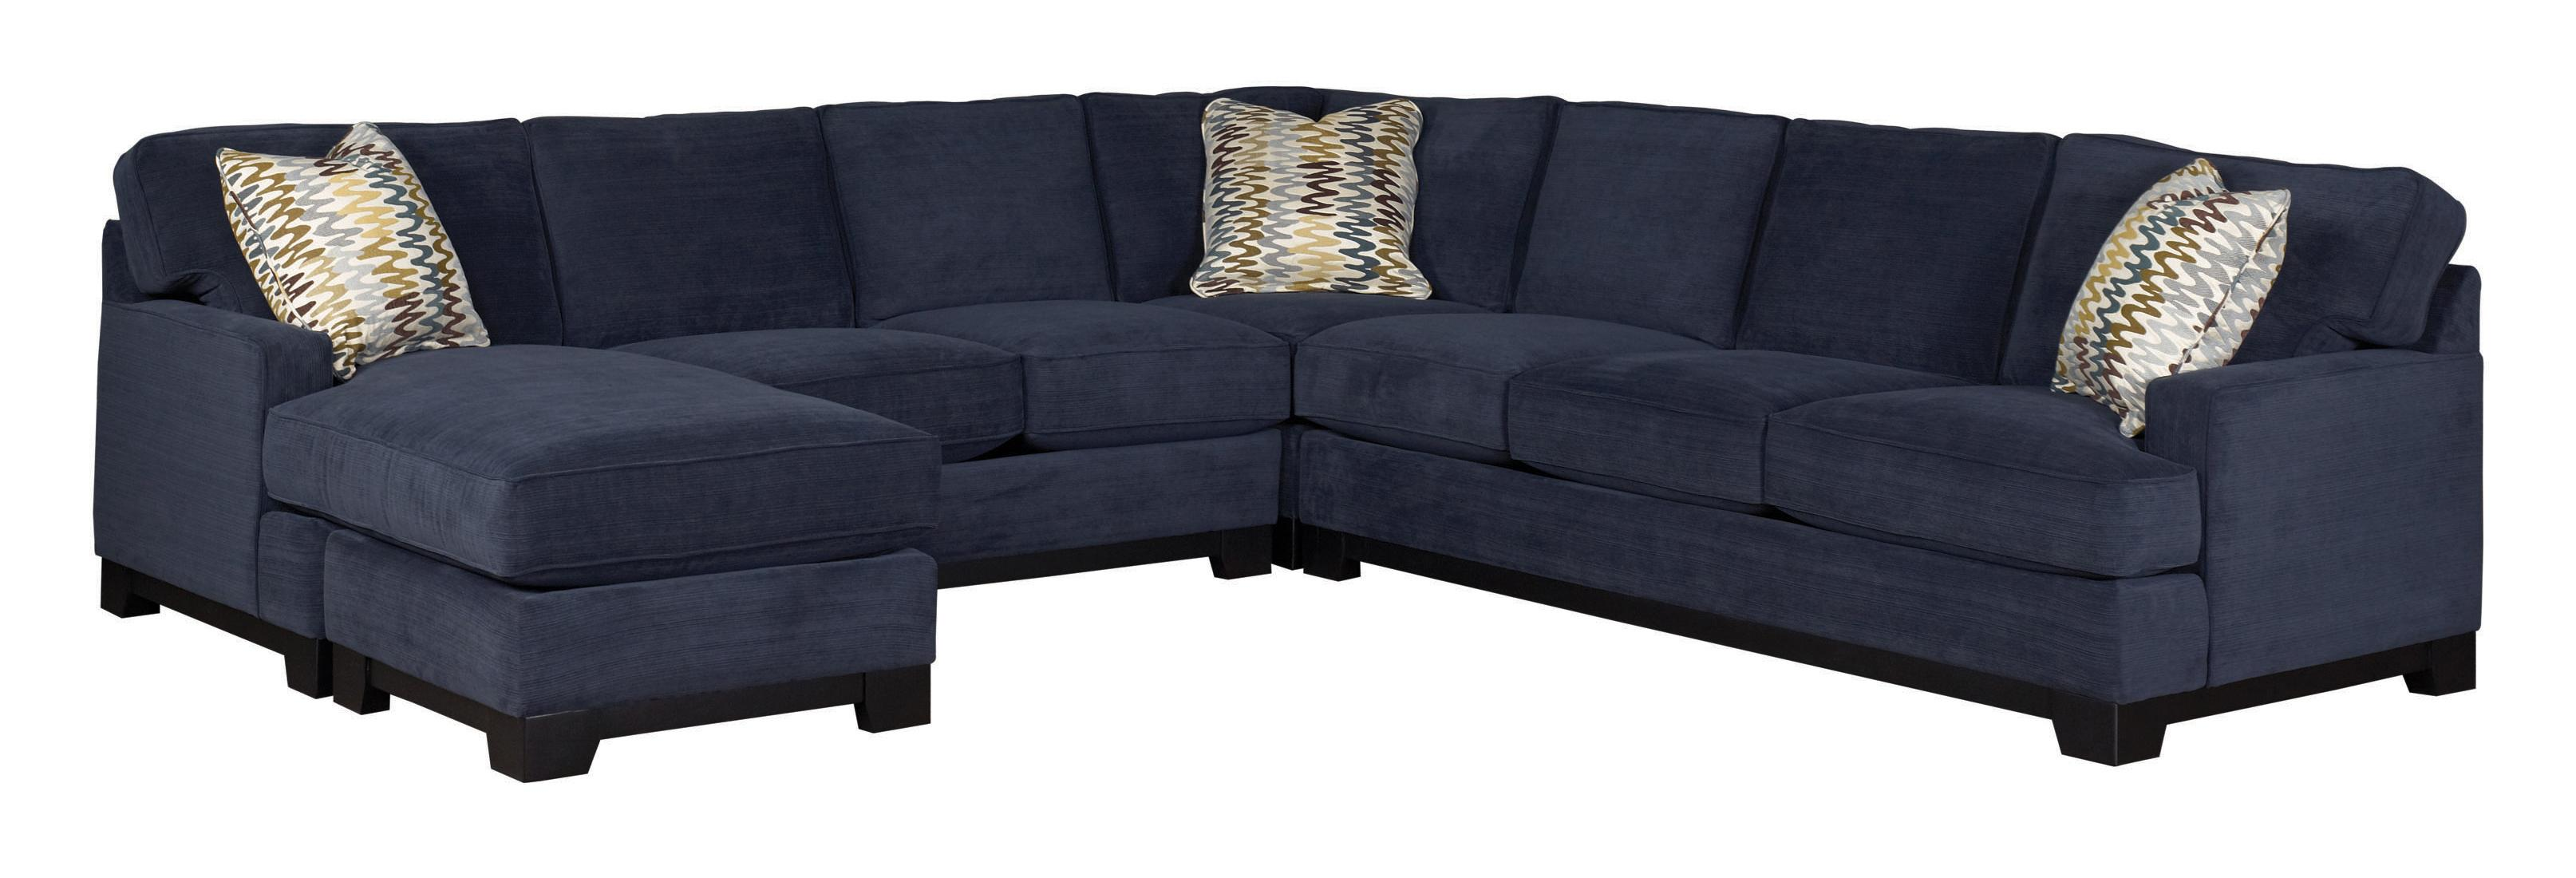 Jonathan louis choices kronos contemporary 4 piece for 4 piece sectional sofa with chaise